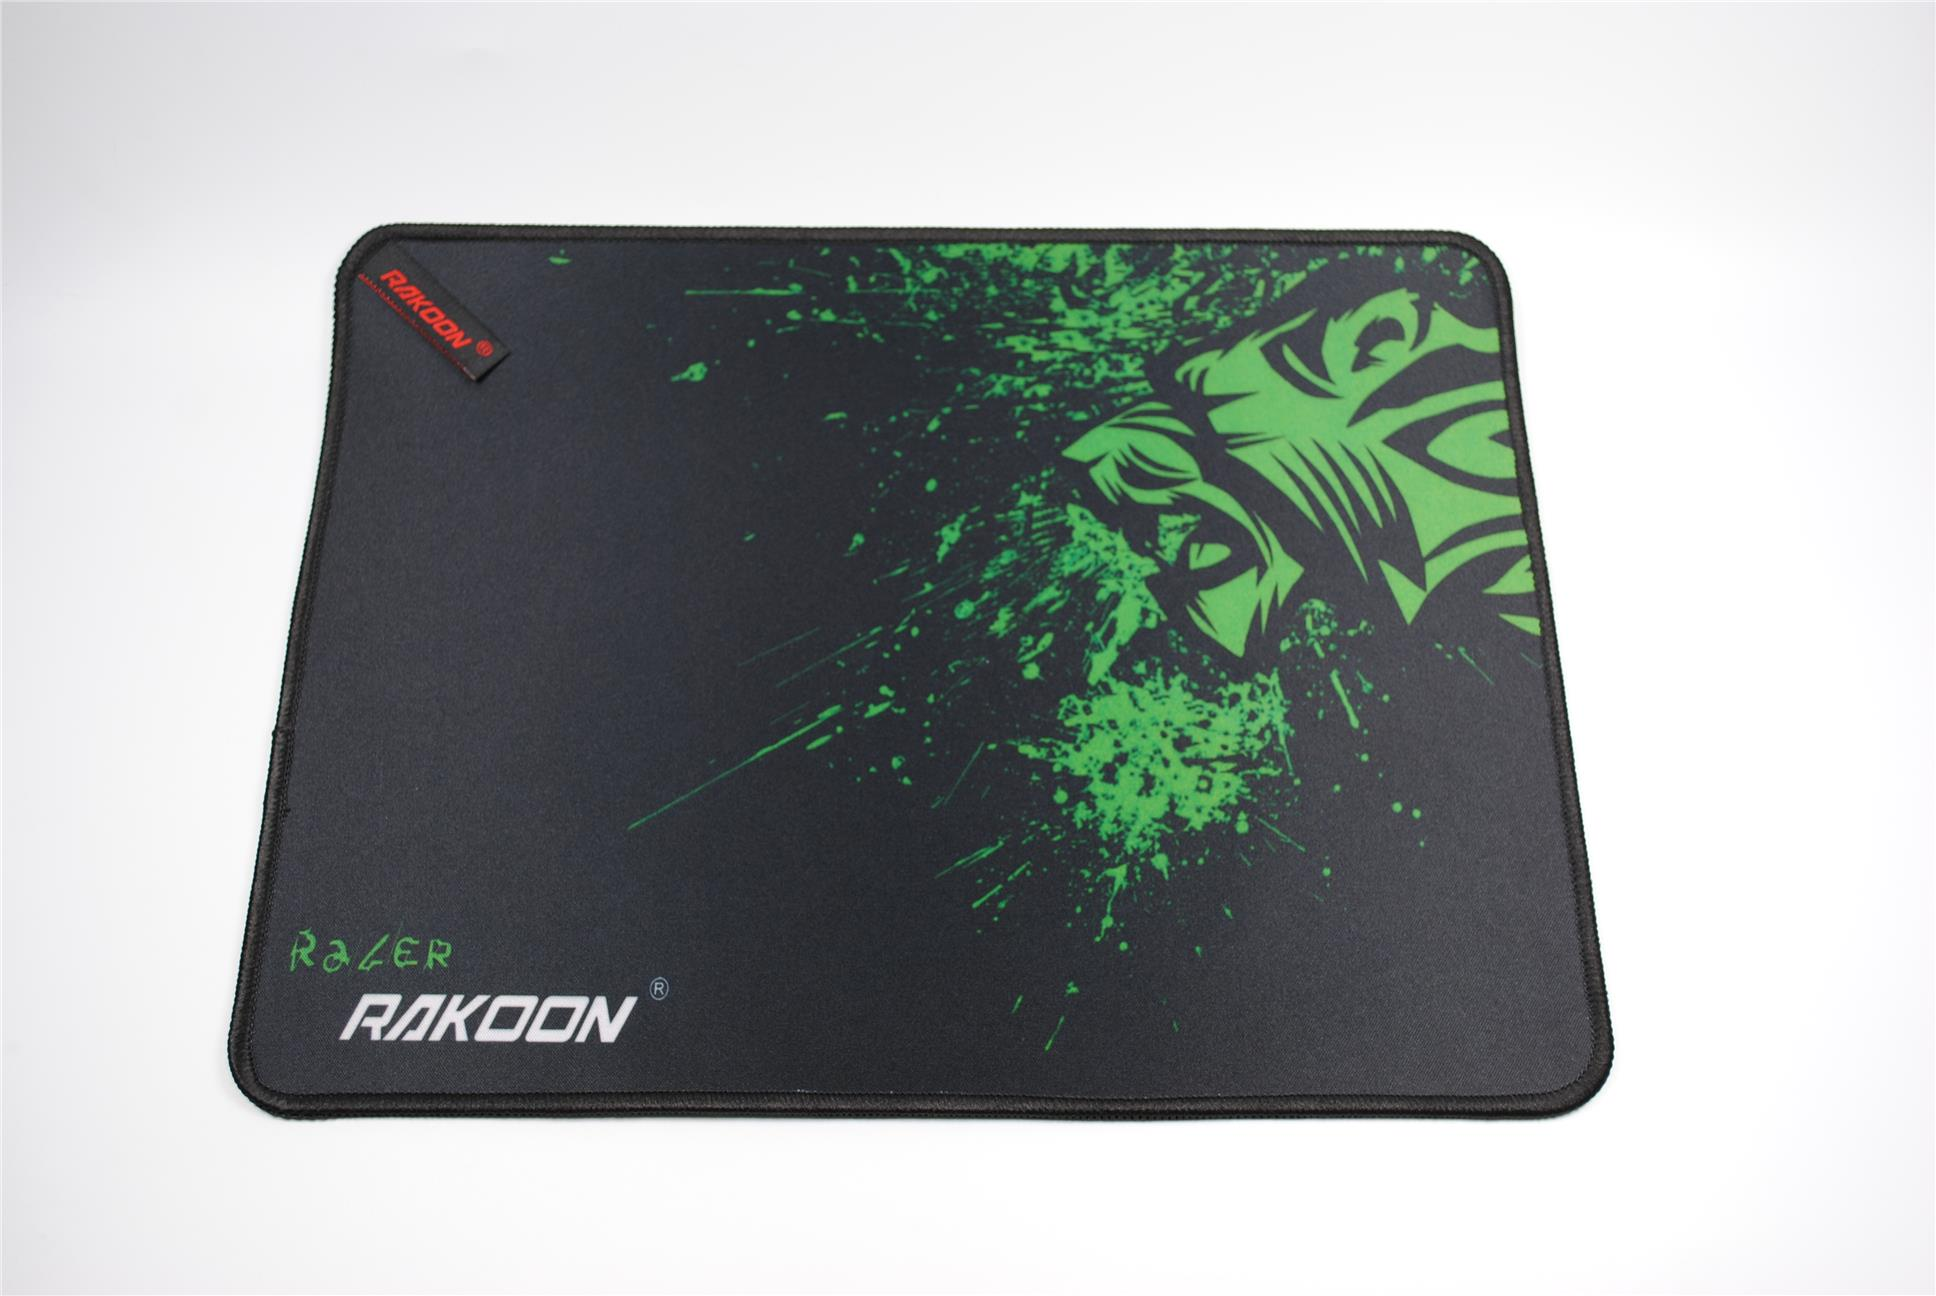 High Quality Gaming Mouse Pad for Gamer / Cybercafe / Education